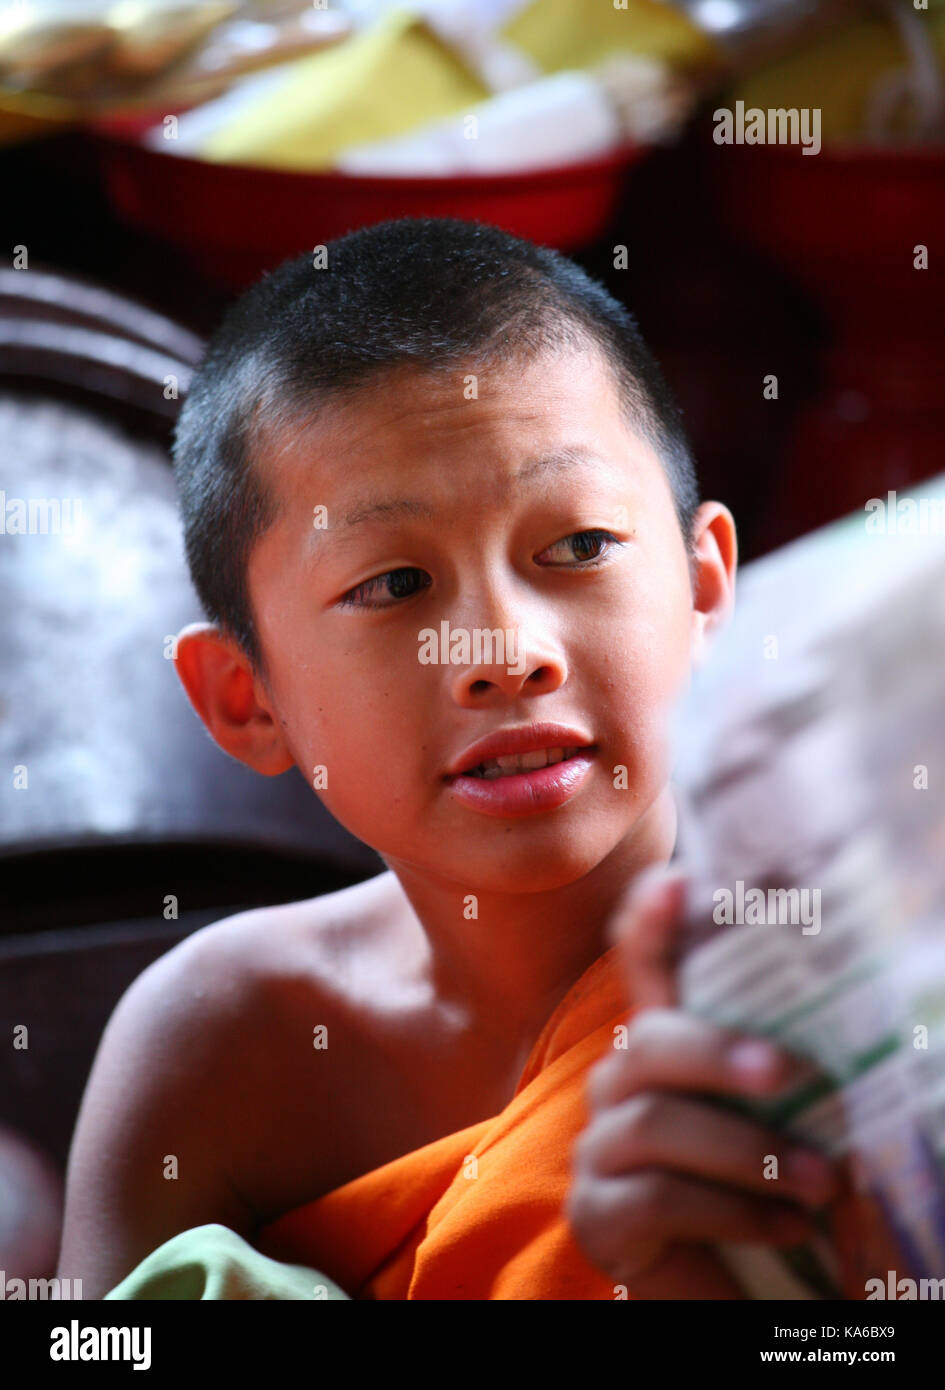 Daily life in a Buddhist monastery. Closeup portrait of a little smiling boy -  Buddhist monk in a monastery. - Stock Image